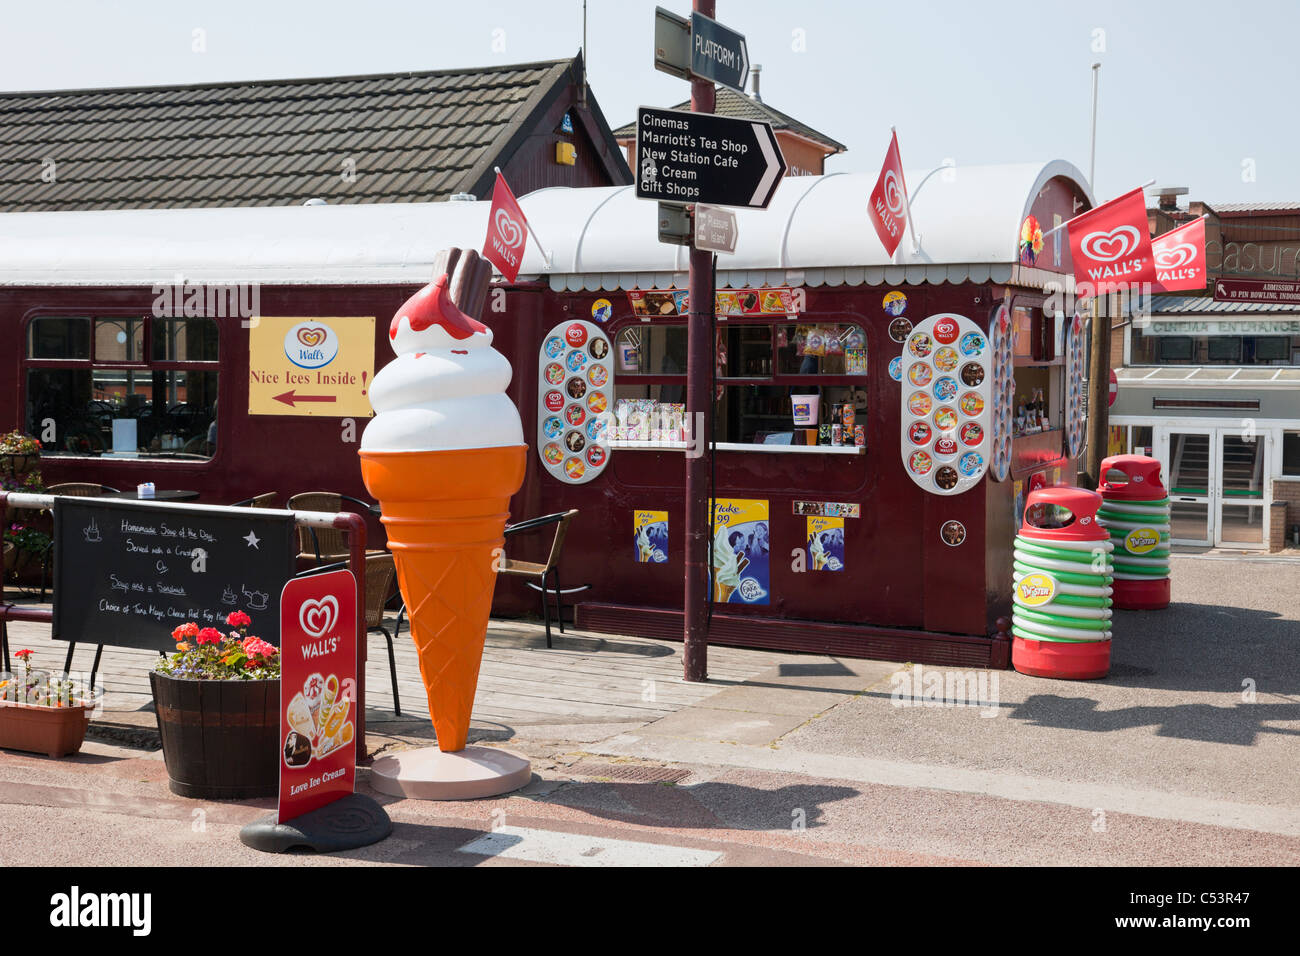 Shop selling ice creams in an old train carriage on seaside resort promenade. Lytham St Annes, Lancashire, England, - Stock Image